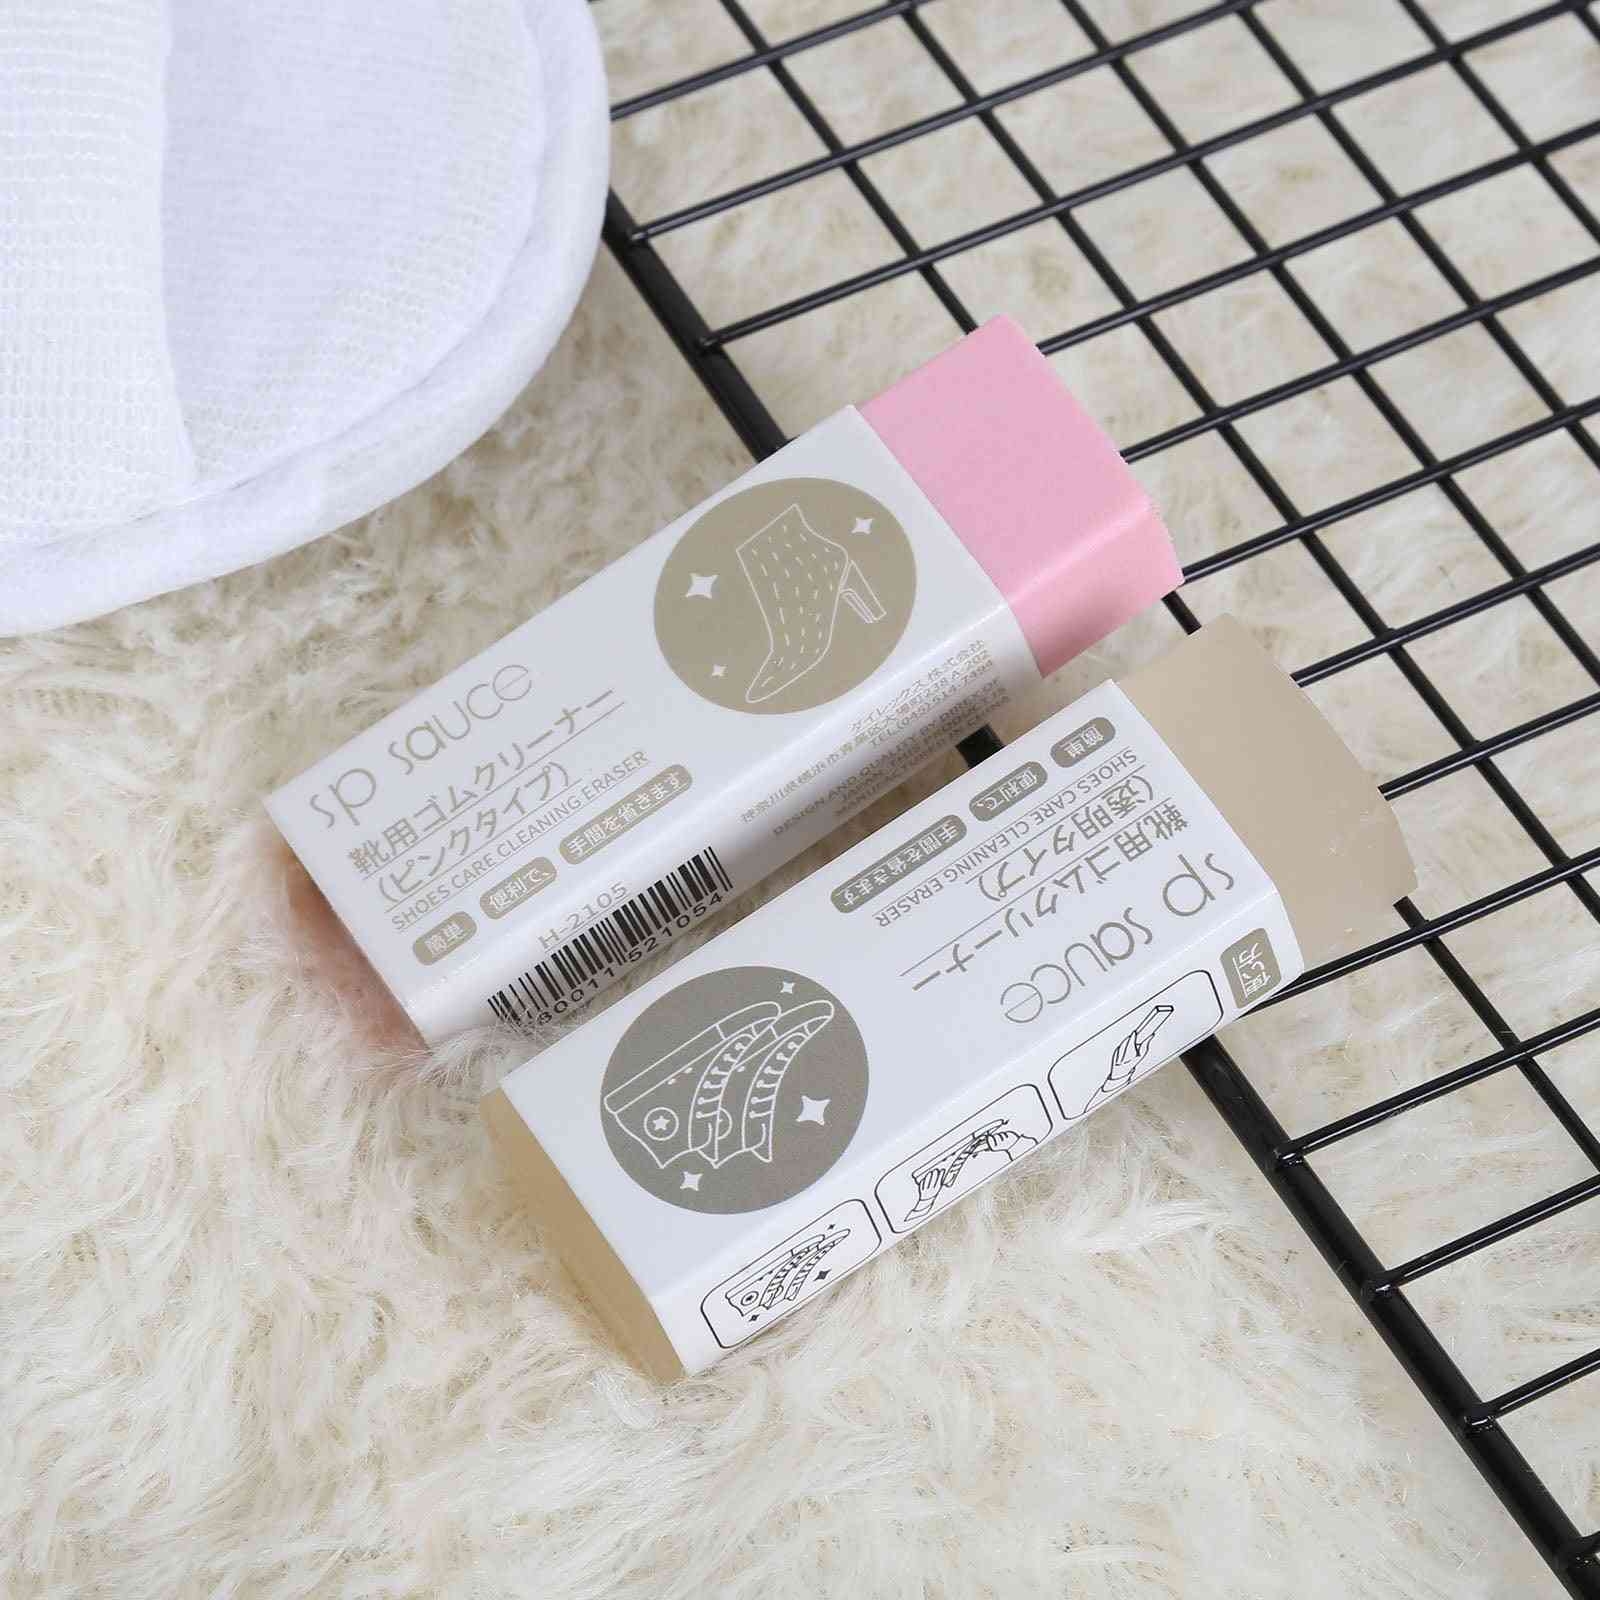 Cleaning Suede Matte Shoes Care Leather Sneaker Eraser